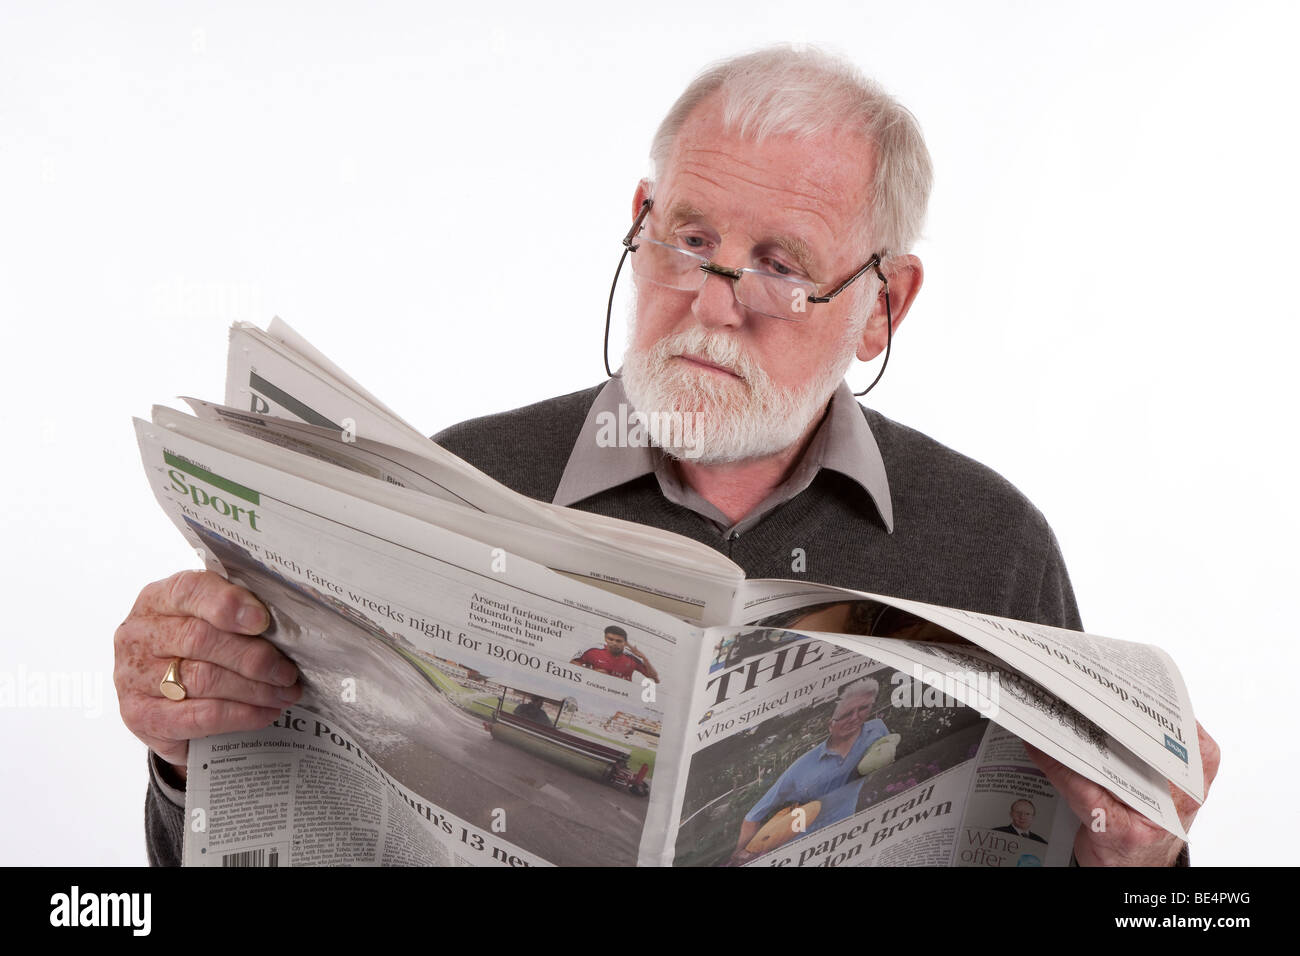 Older retired man reading daily newspaper. - Stock Image